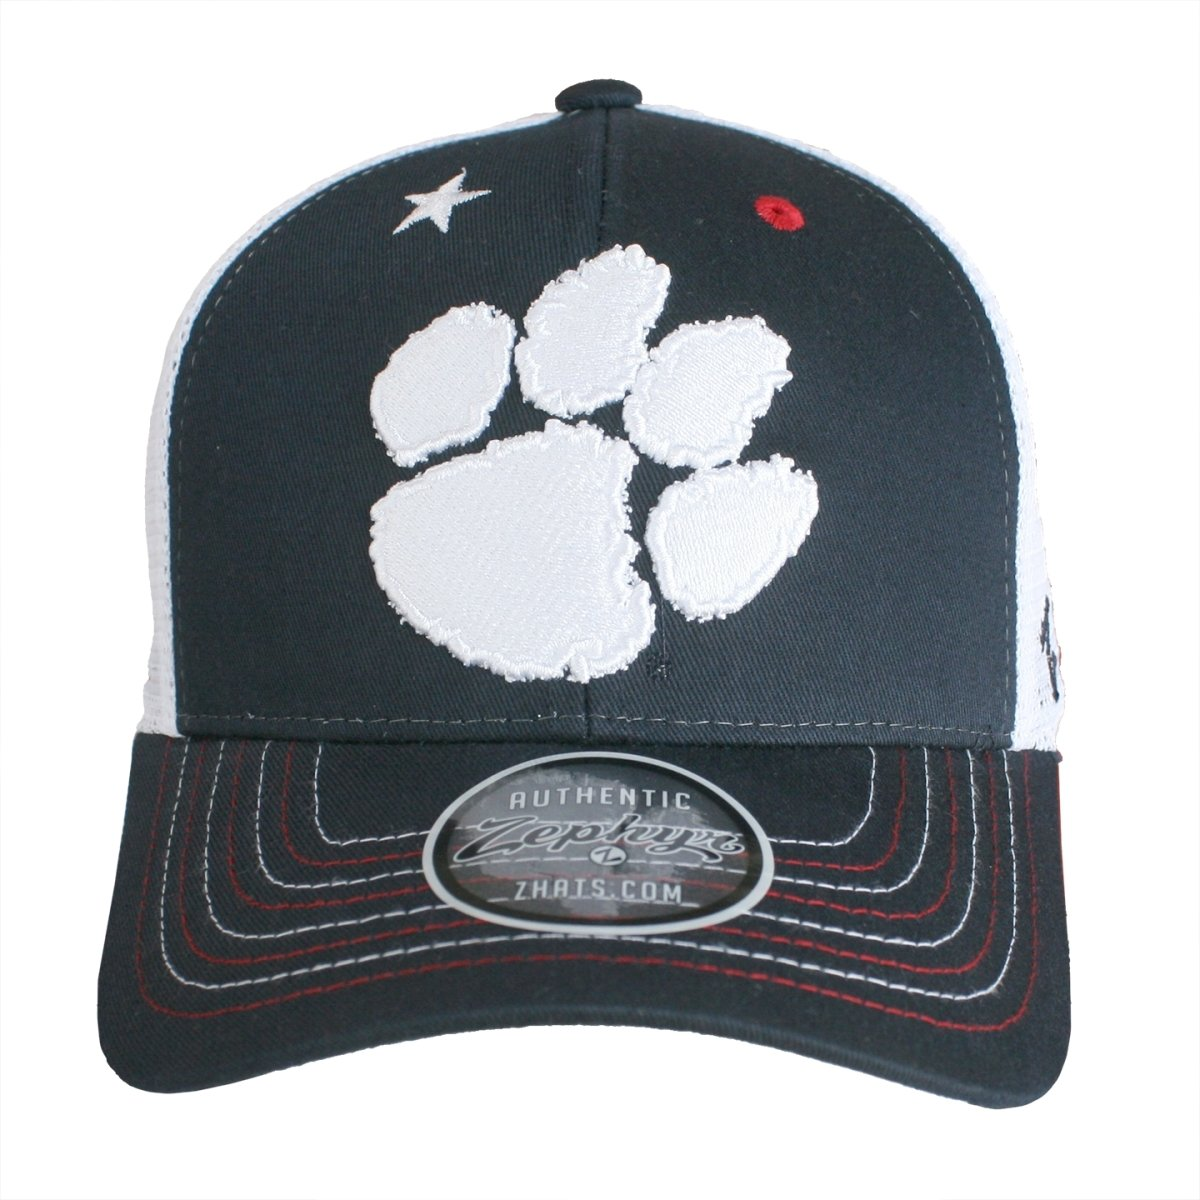 Zephyr Spirited Navy Mesh Snap Back Hat with Paw and Star - Mr. Knickerbocker